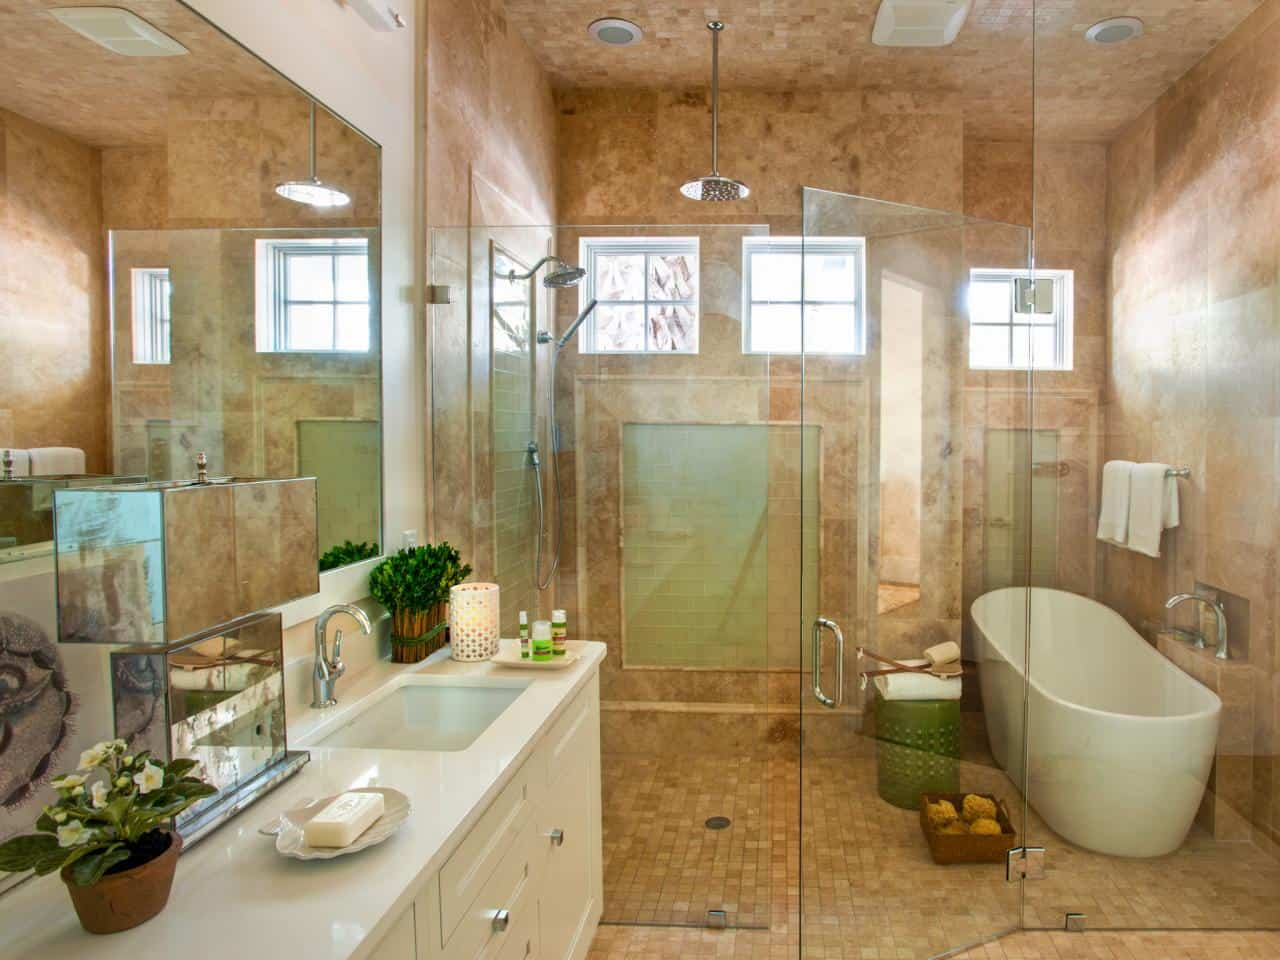 Soaking Tub inside shower